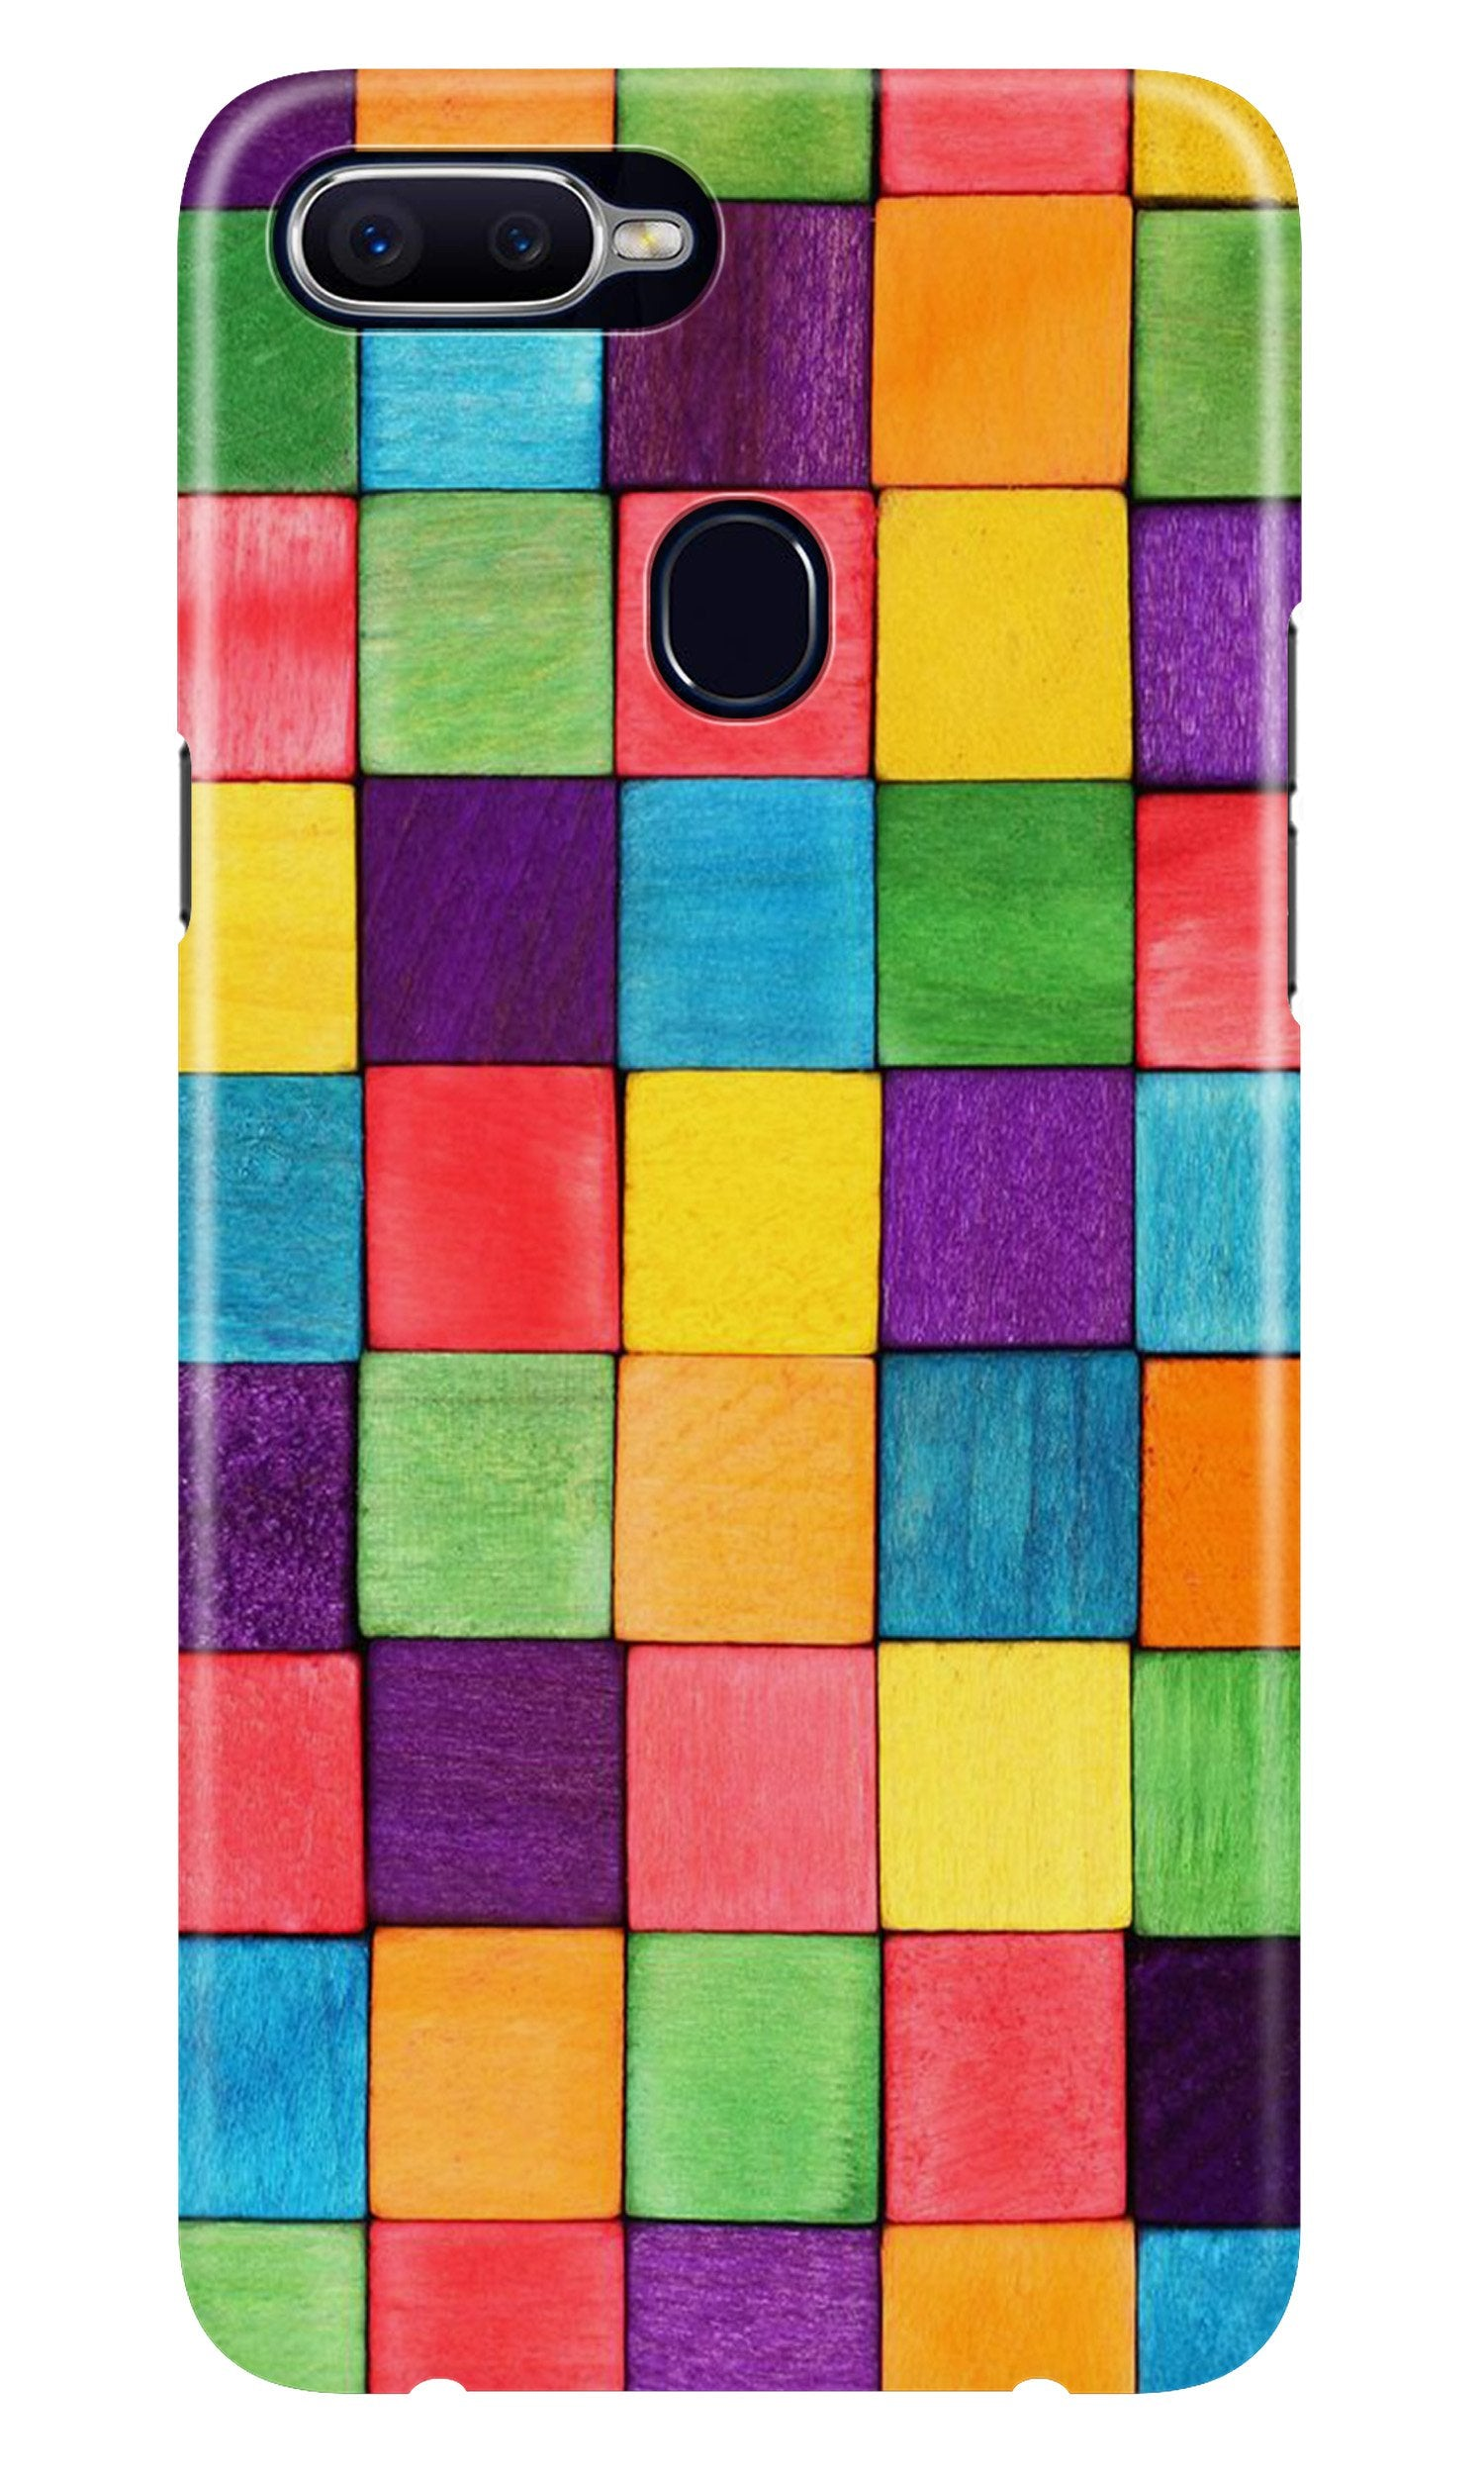 Colorful Square Case for Vivo Y83 (Design No. 218)